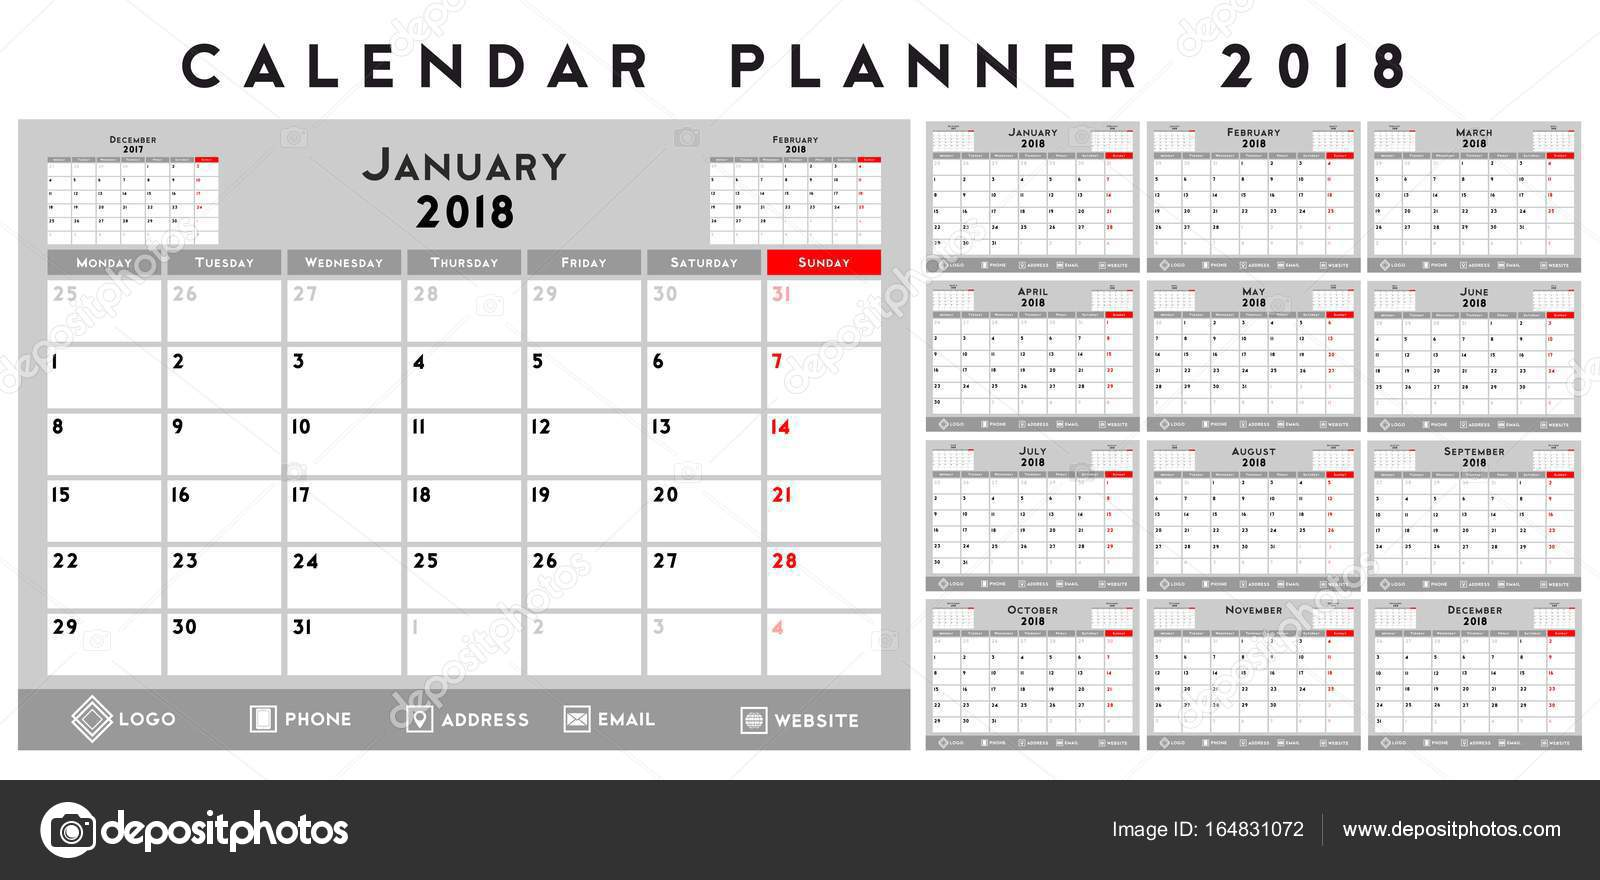 calendar for company in strict corporate stylegreywhitered colors vector by xennya